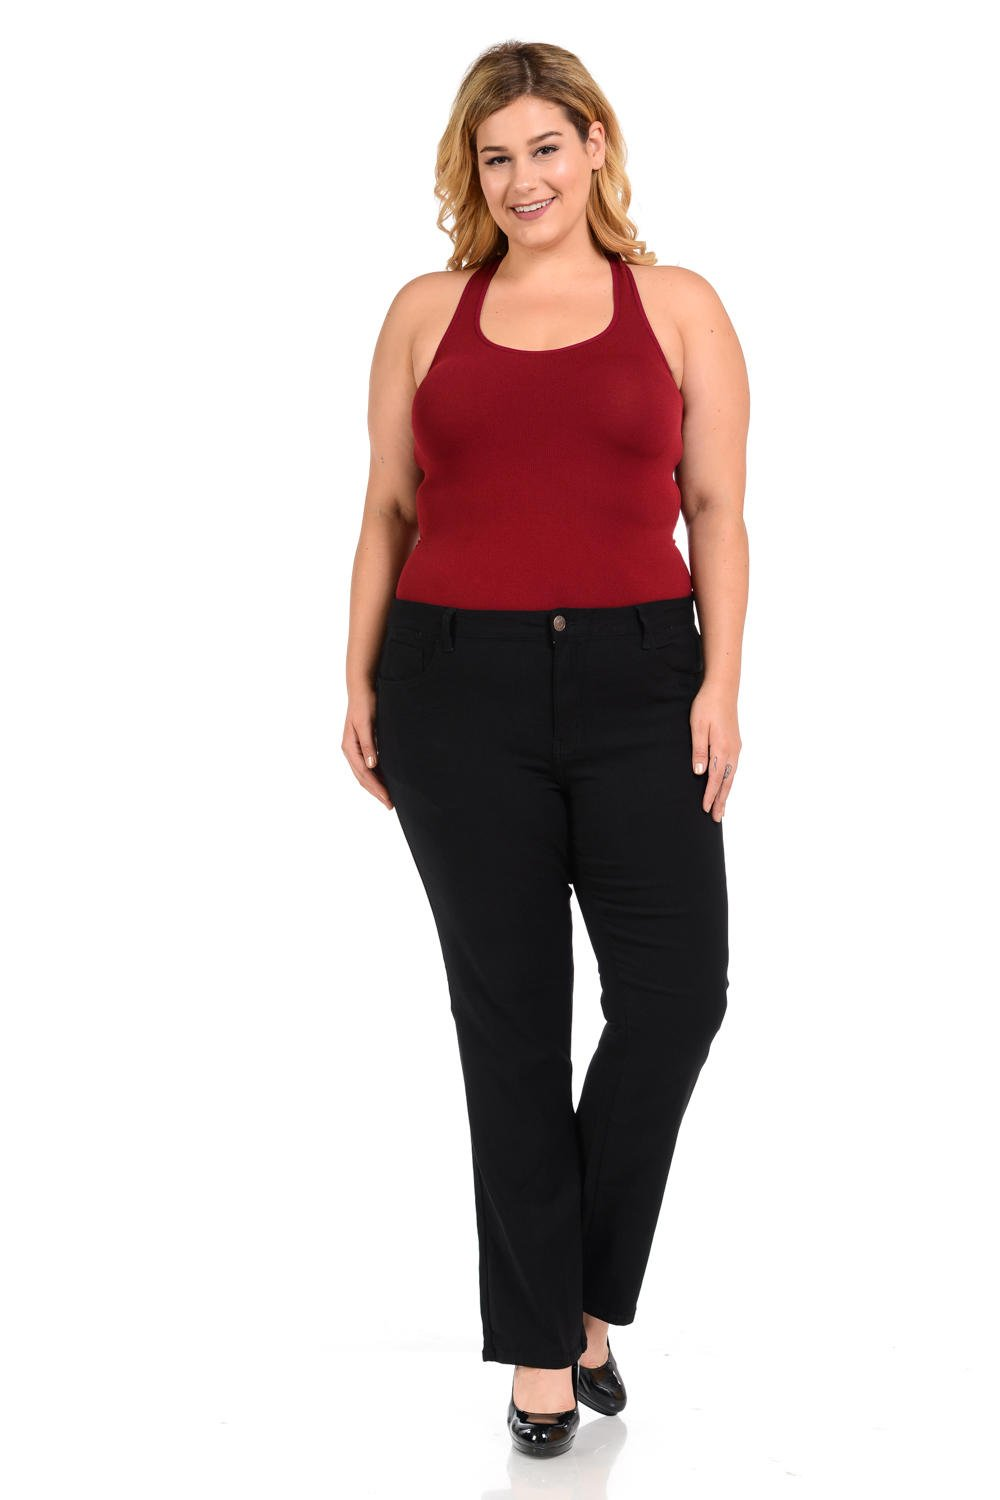 926 Women's Jeans - Plus Size - High Waist - Push up - Bootcut - Style W1506-1 926-PBB-W1506-1